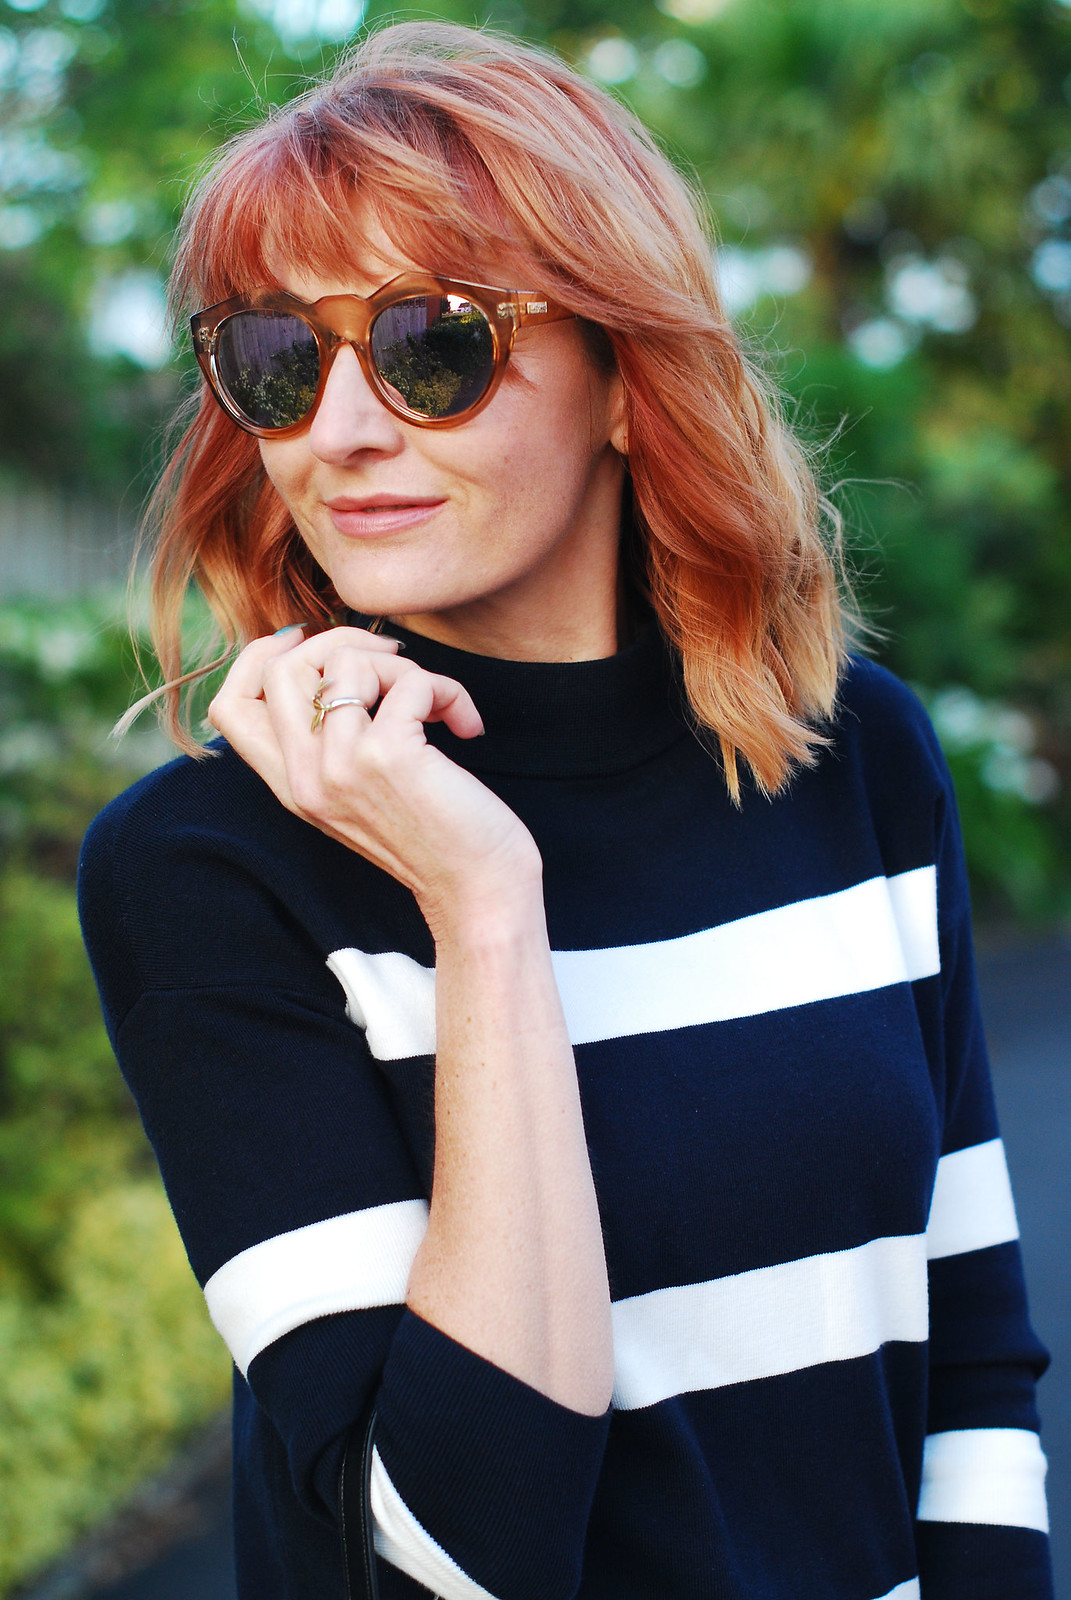 Navy/white striped sweater, round mirrored sunglasses - Hobbs SS16 | Not Dressed As Lamb